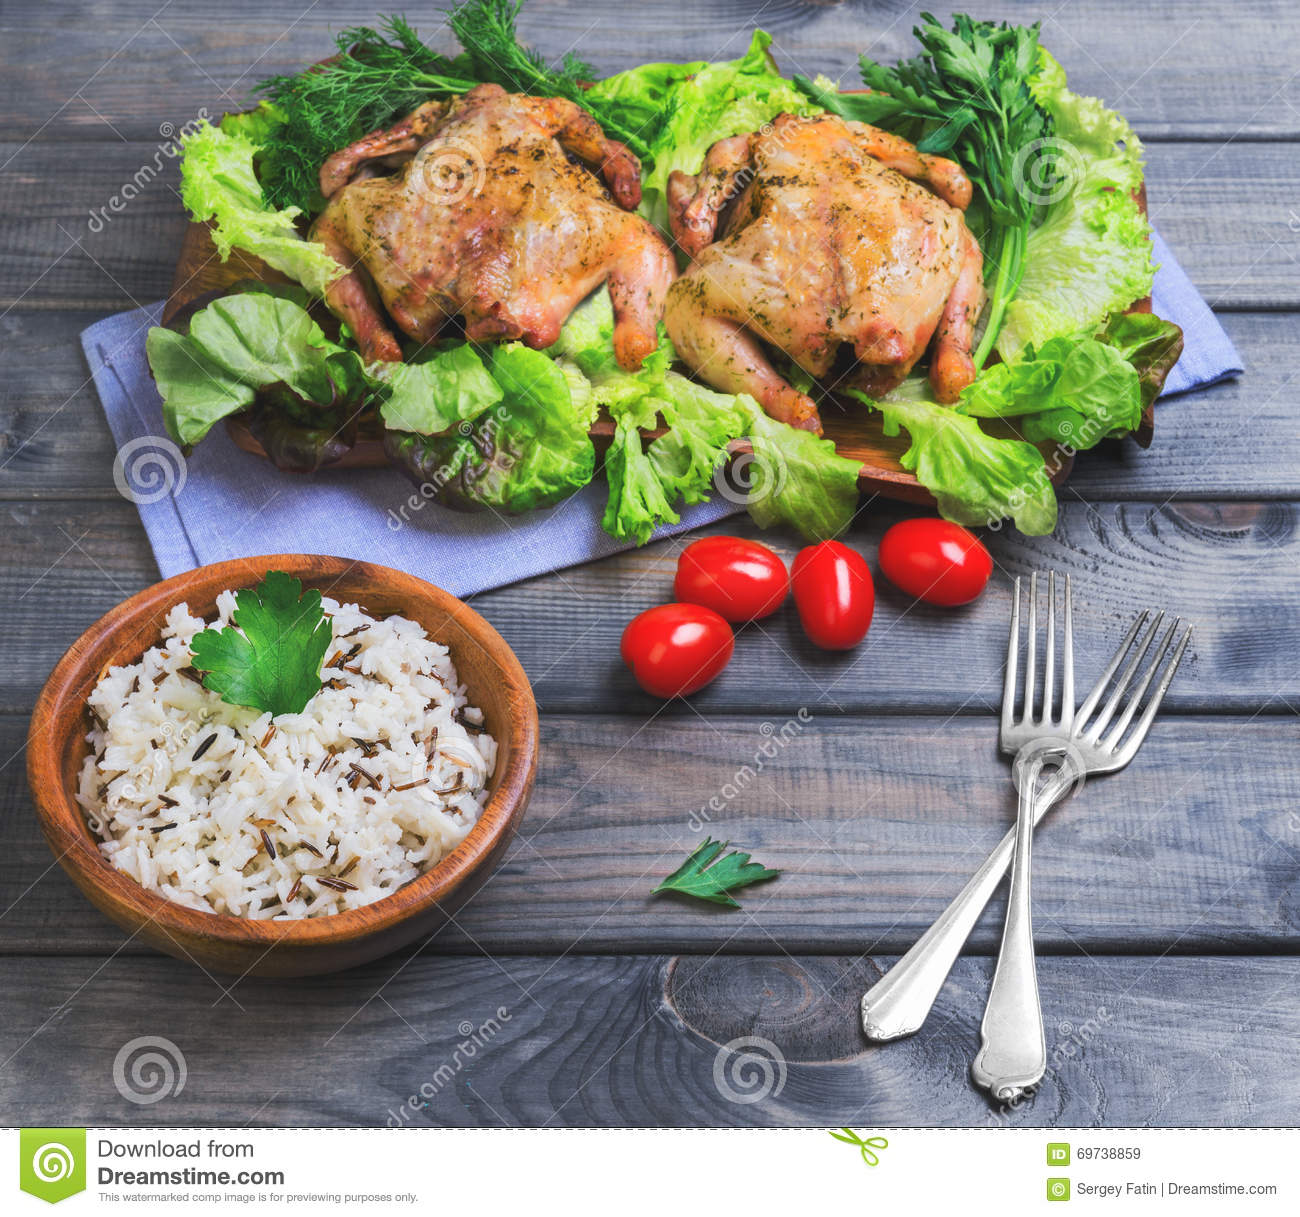 Wild and long grain white rice in a wooden bowl, two baked chick